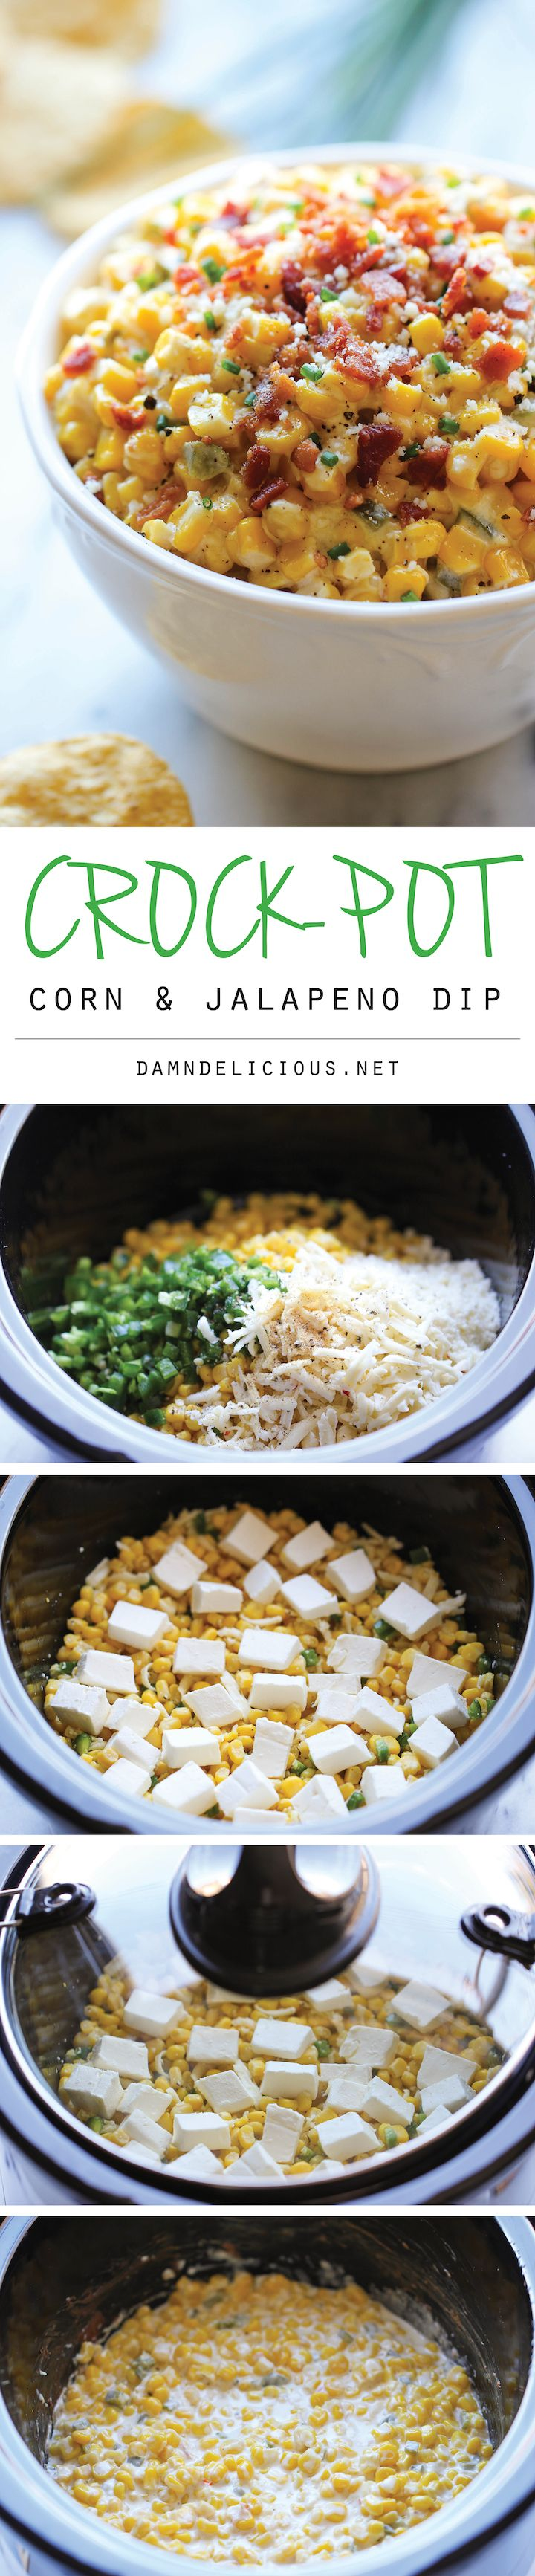 Slow-Cooker-Corn-and-Jalapeno-Dip.jpg